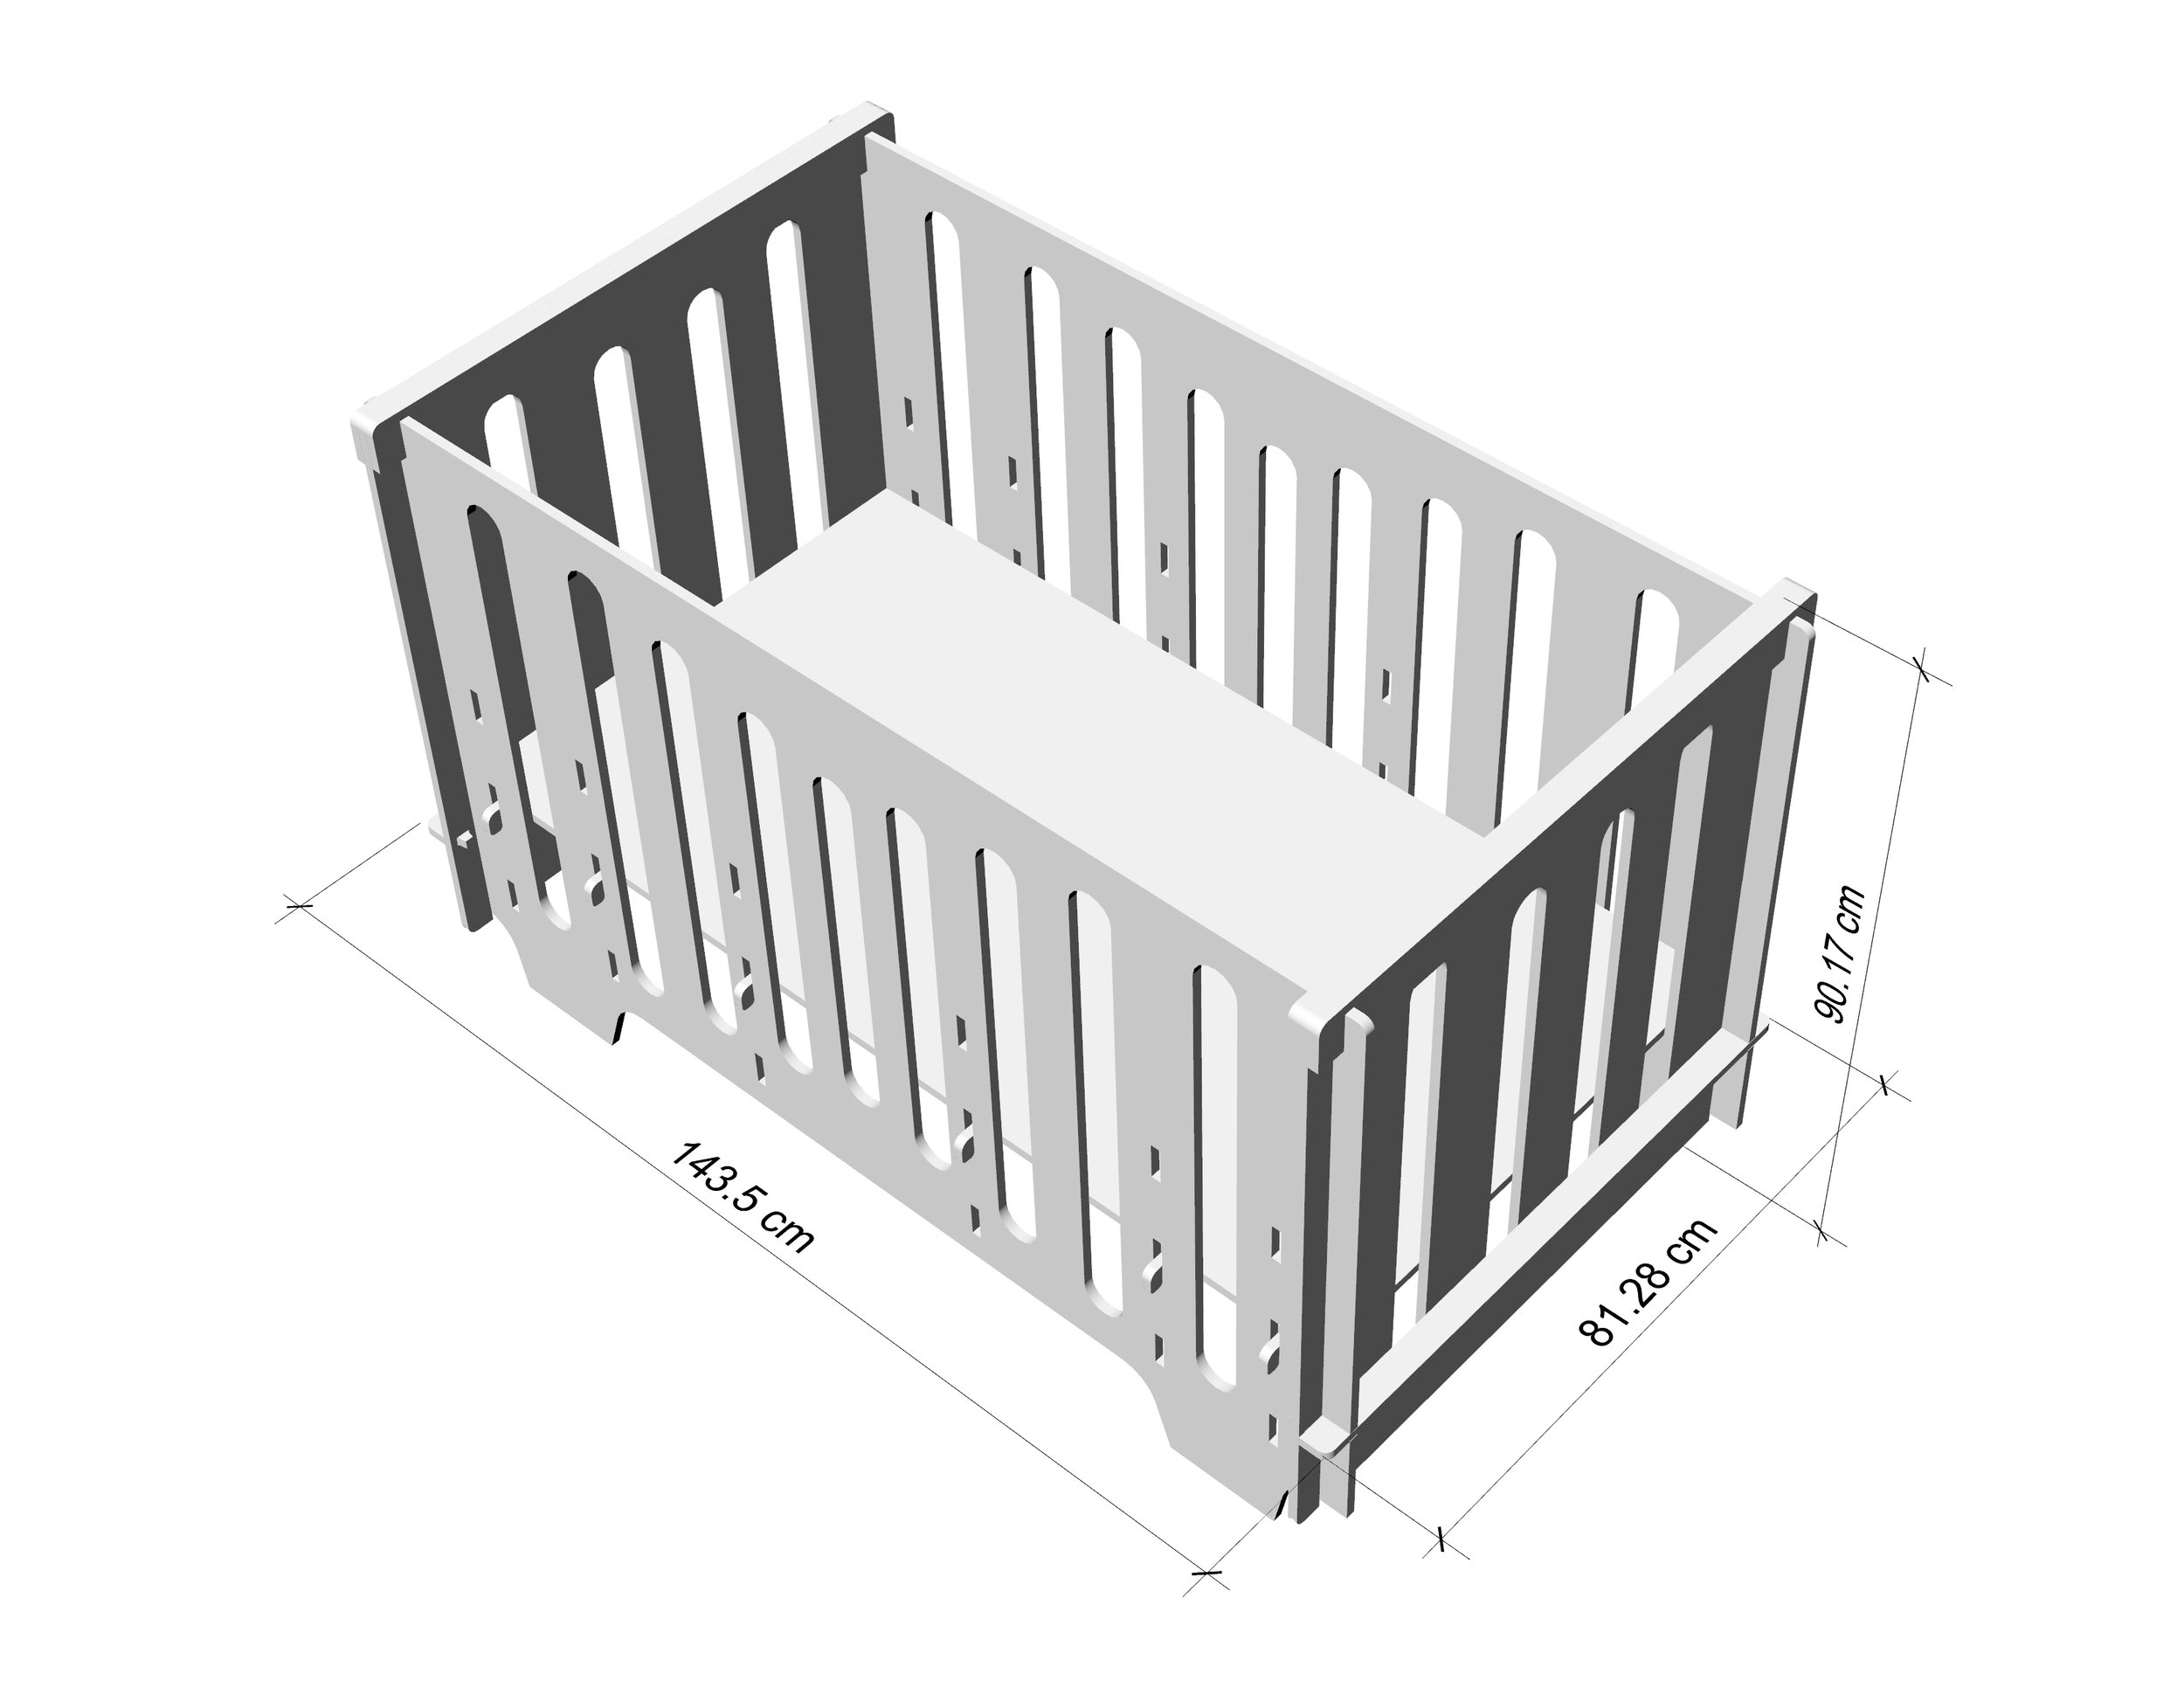 Baby Cradle Dimensions Noni Full Size Crib Free Shipping Noninoni Kids Best Baby Cribs Made In The Usa No Tools Required Simple Assembly